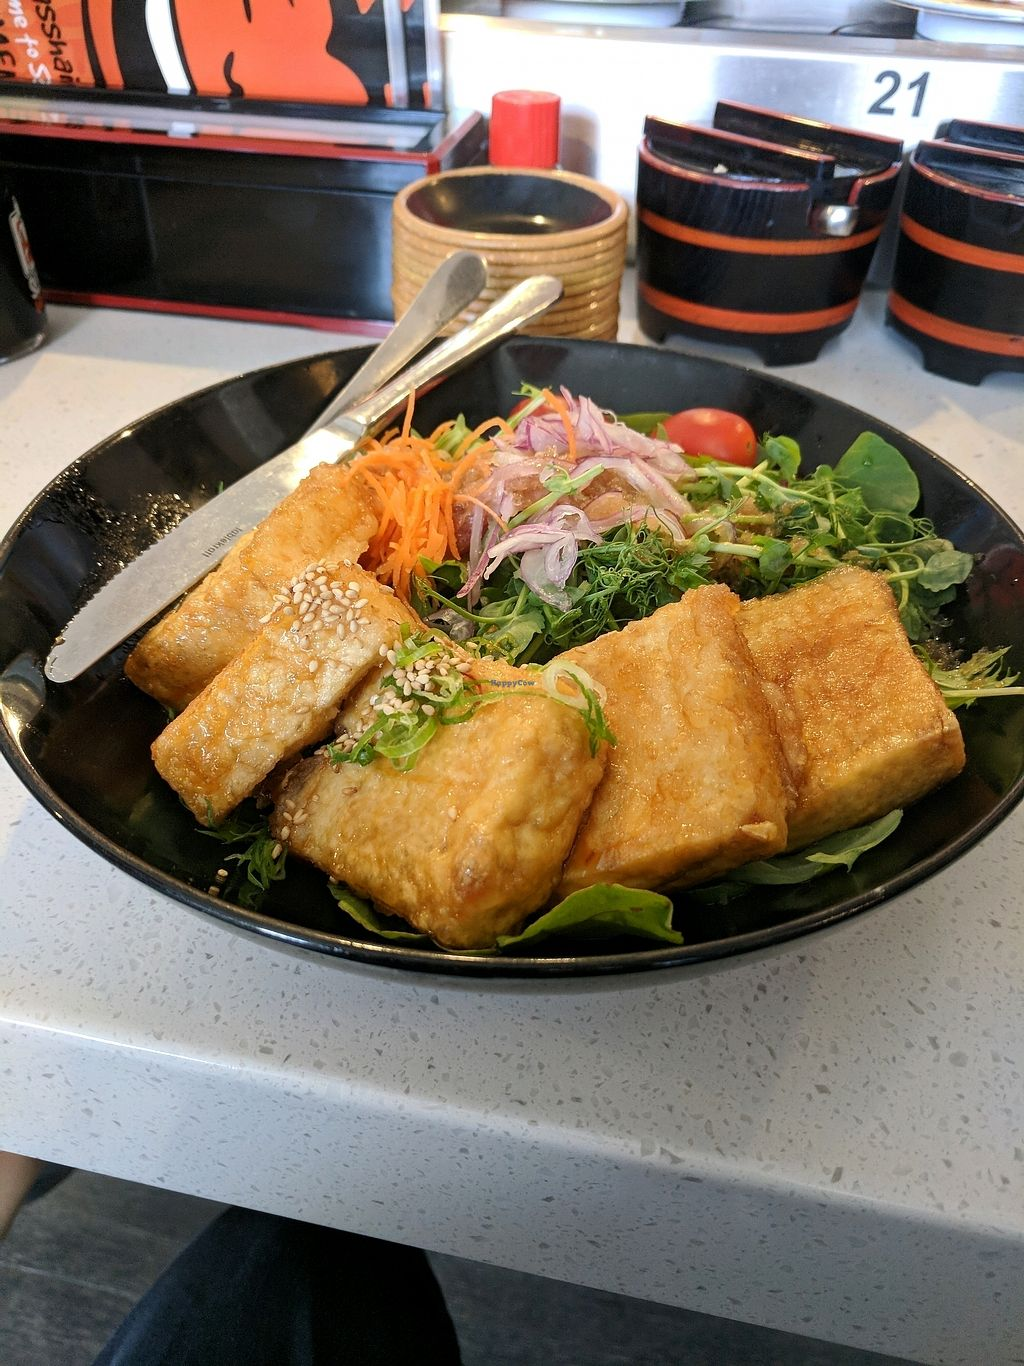 """Photo of Sushi Wawa  by <a href=""""/members/profile/RIPdemon"""">RIPdemon</a> <br/>Fried Tofu  <br/> January 4, 2018  - <a href='/contact/abuse/image/78136/342811'>Report</a>"""